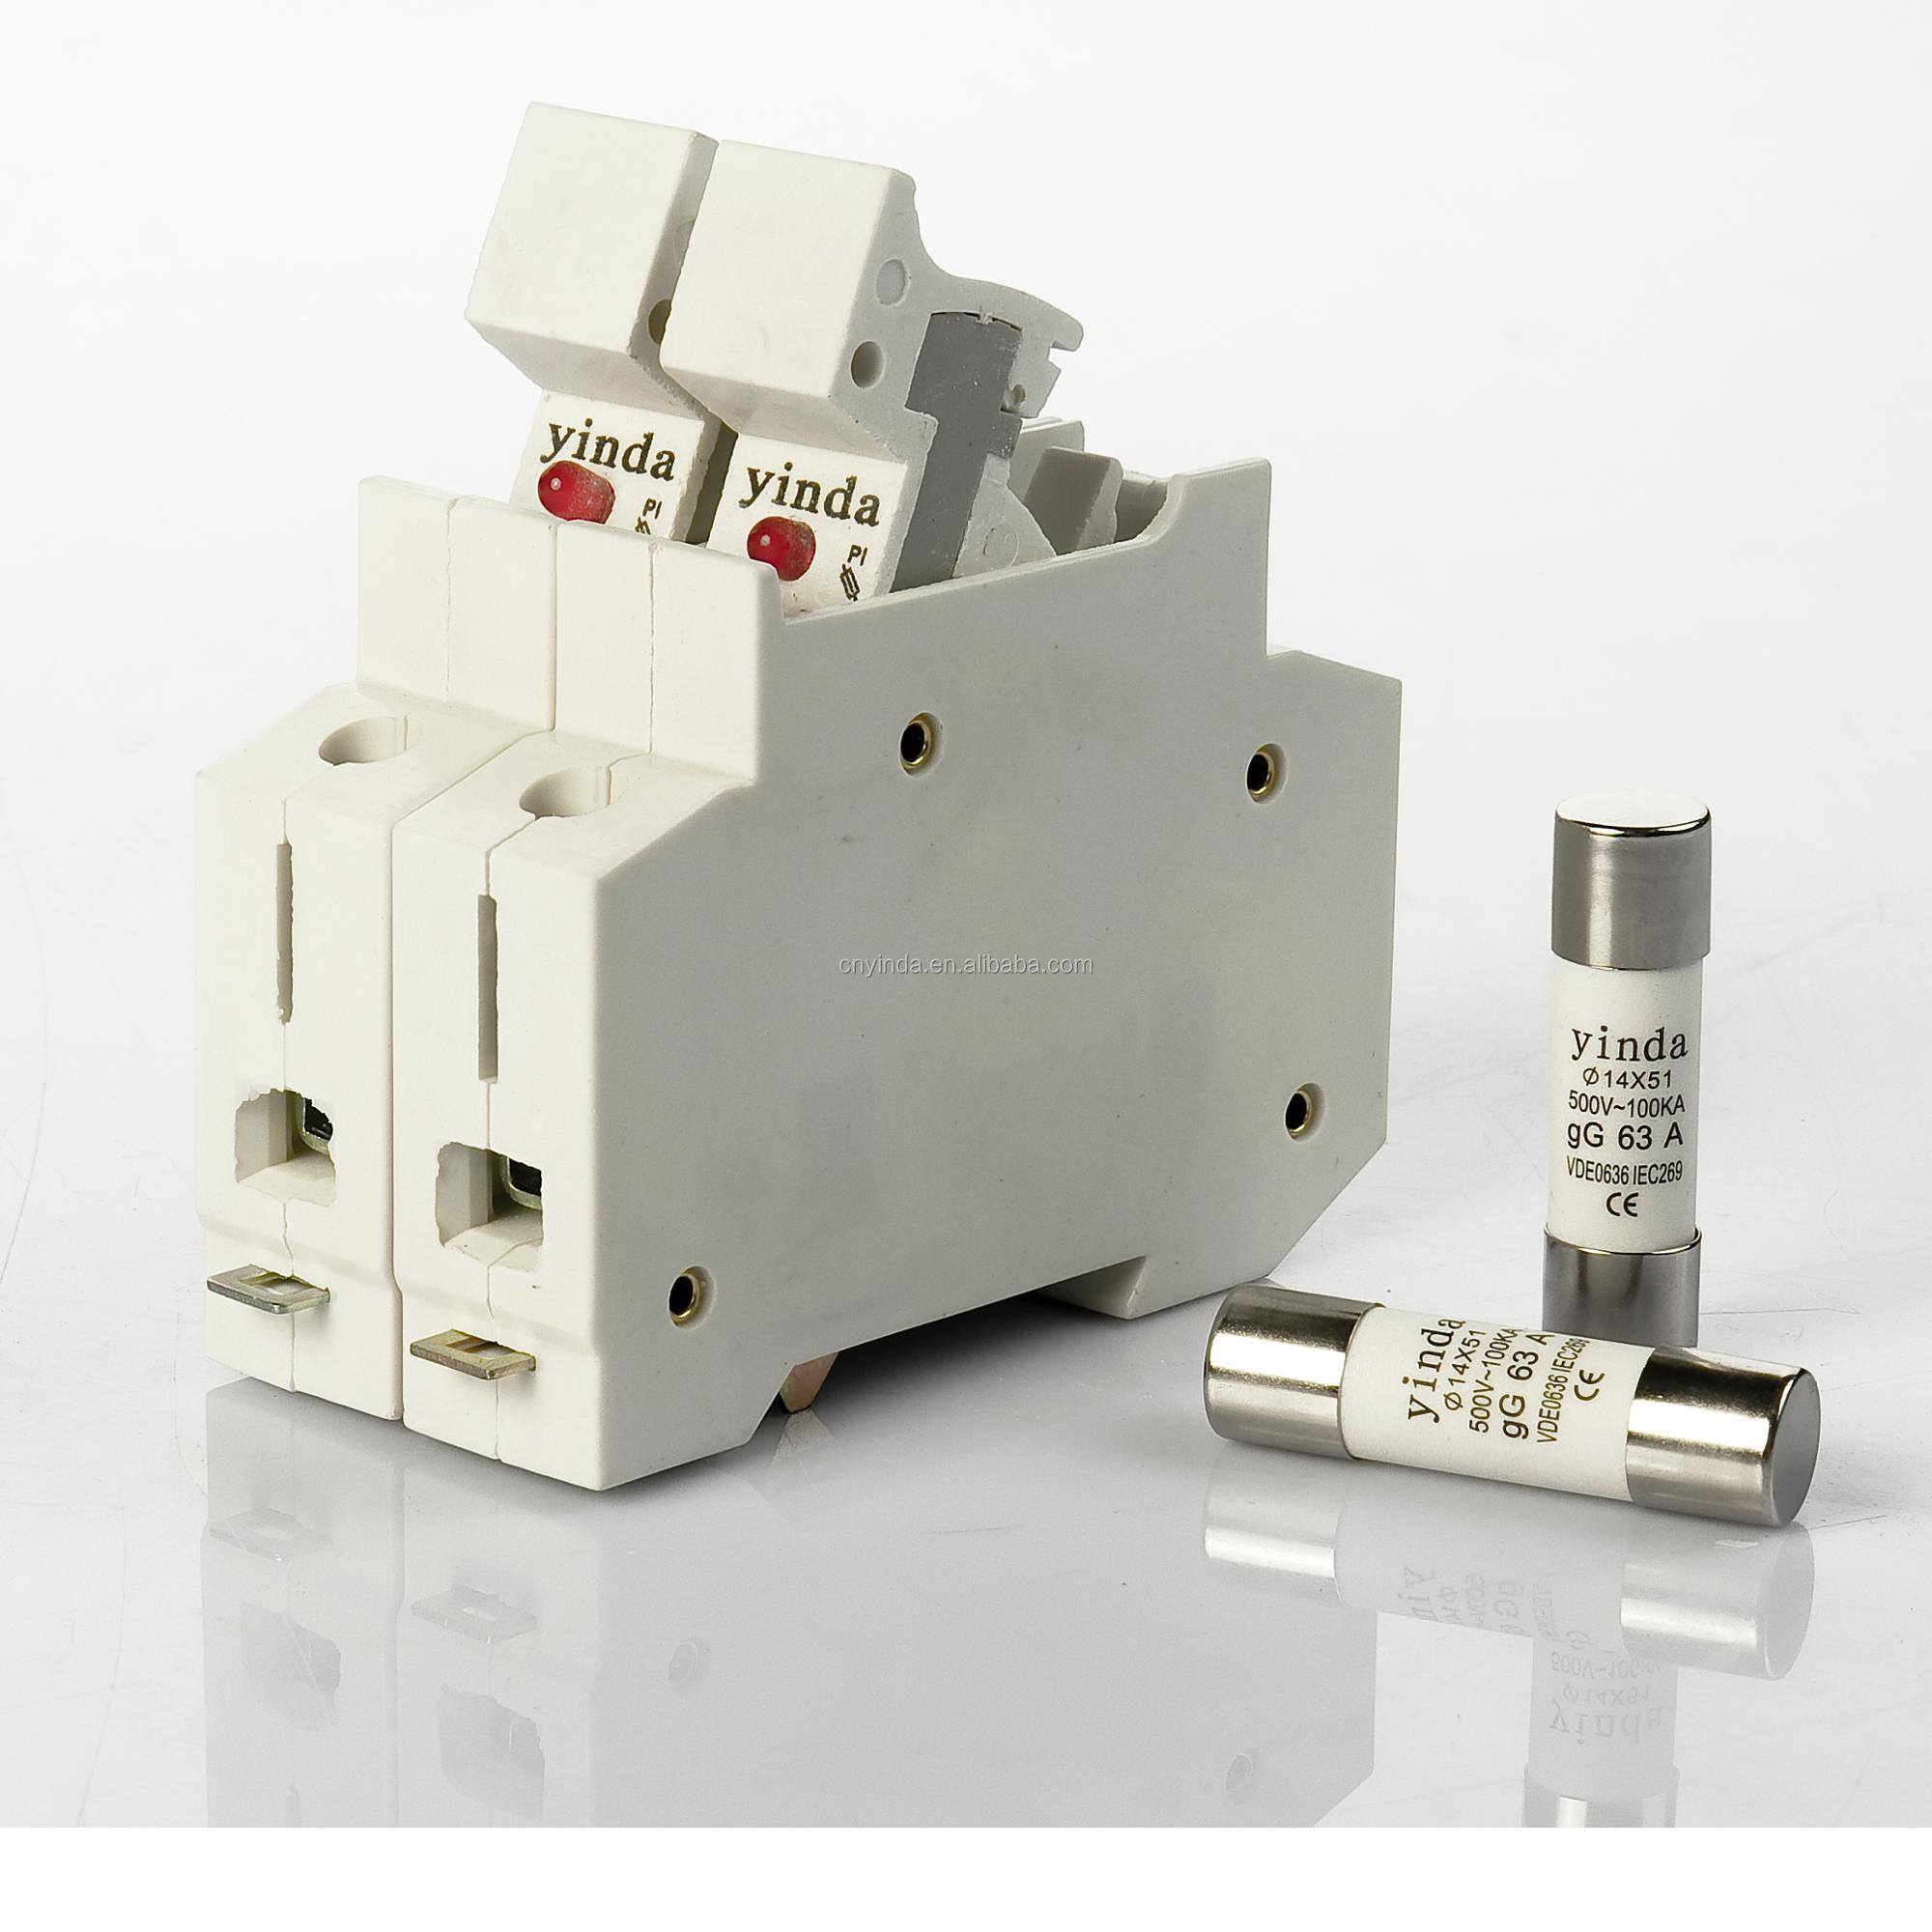 Rt19 Fuse Holder, Rt19 Fuse Holder Suppliers and Manufacturers at  Alibaba.com